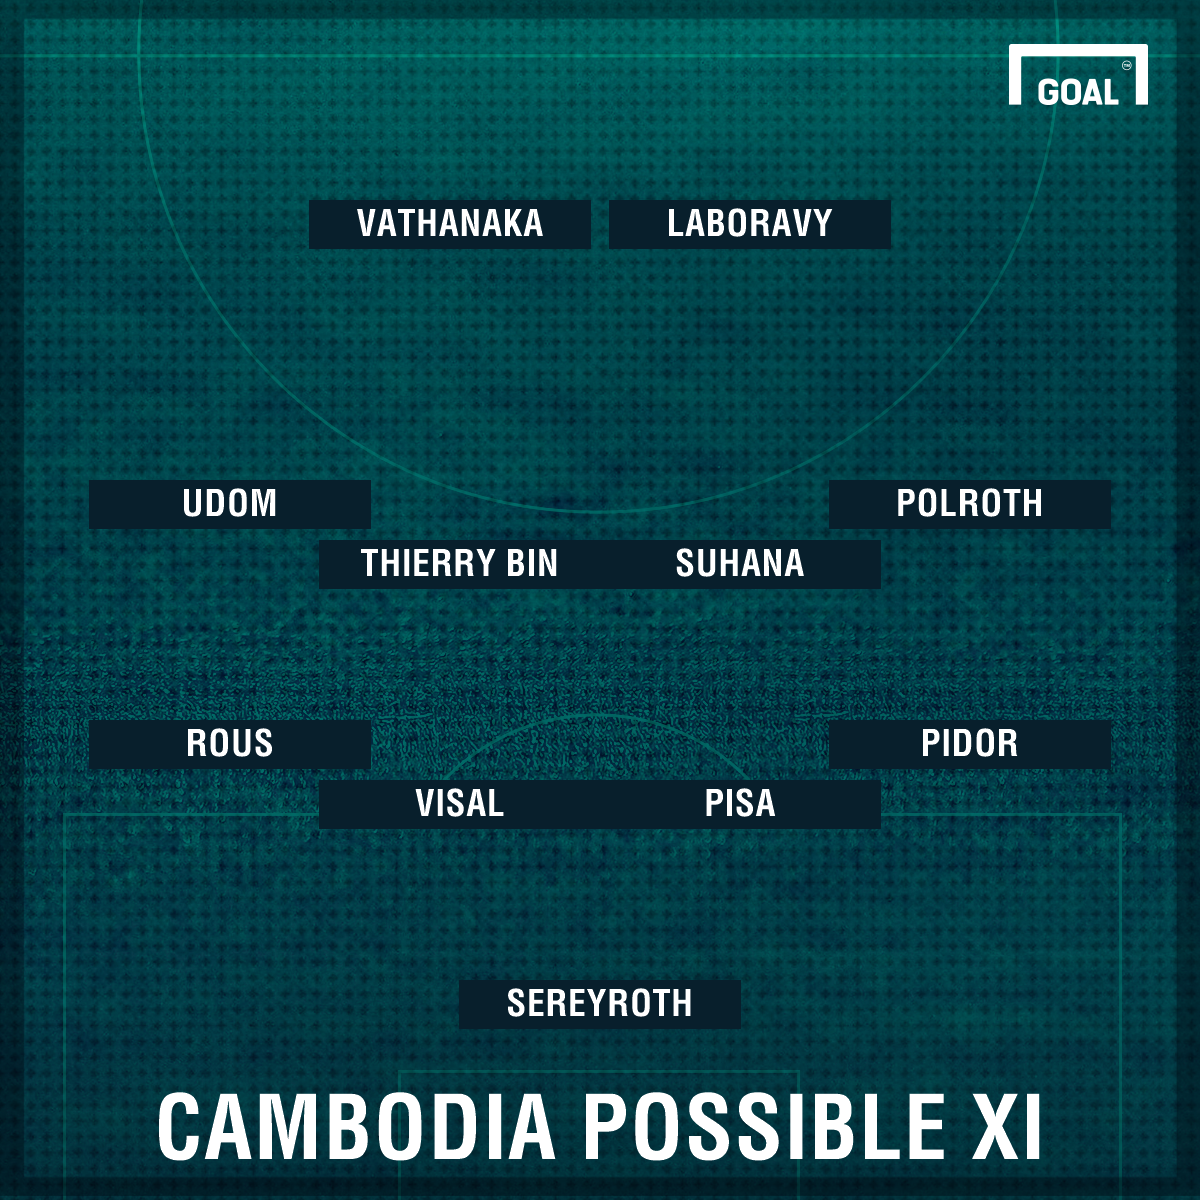 Cambodia XI vs India Possible